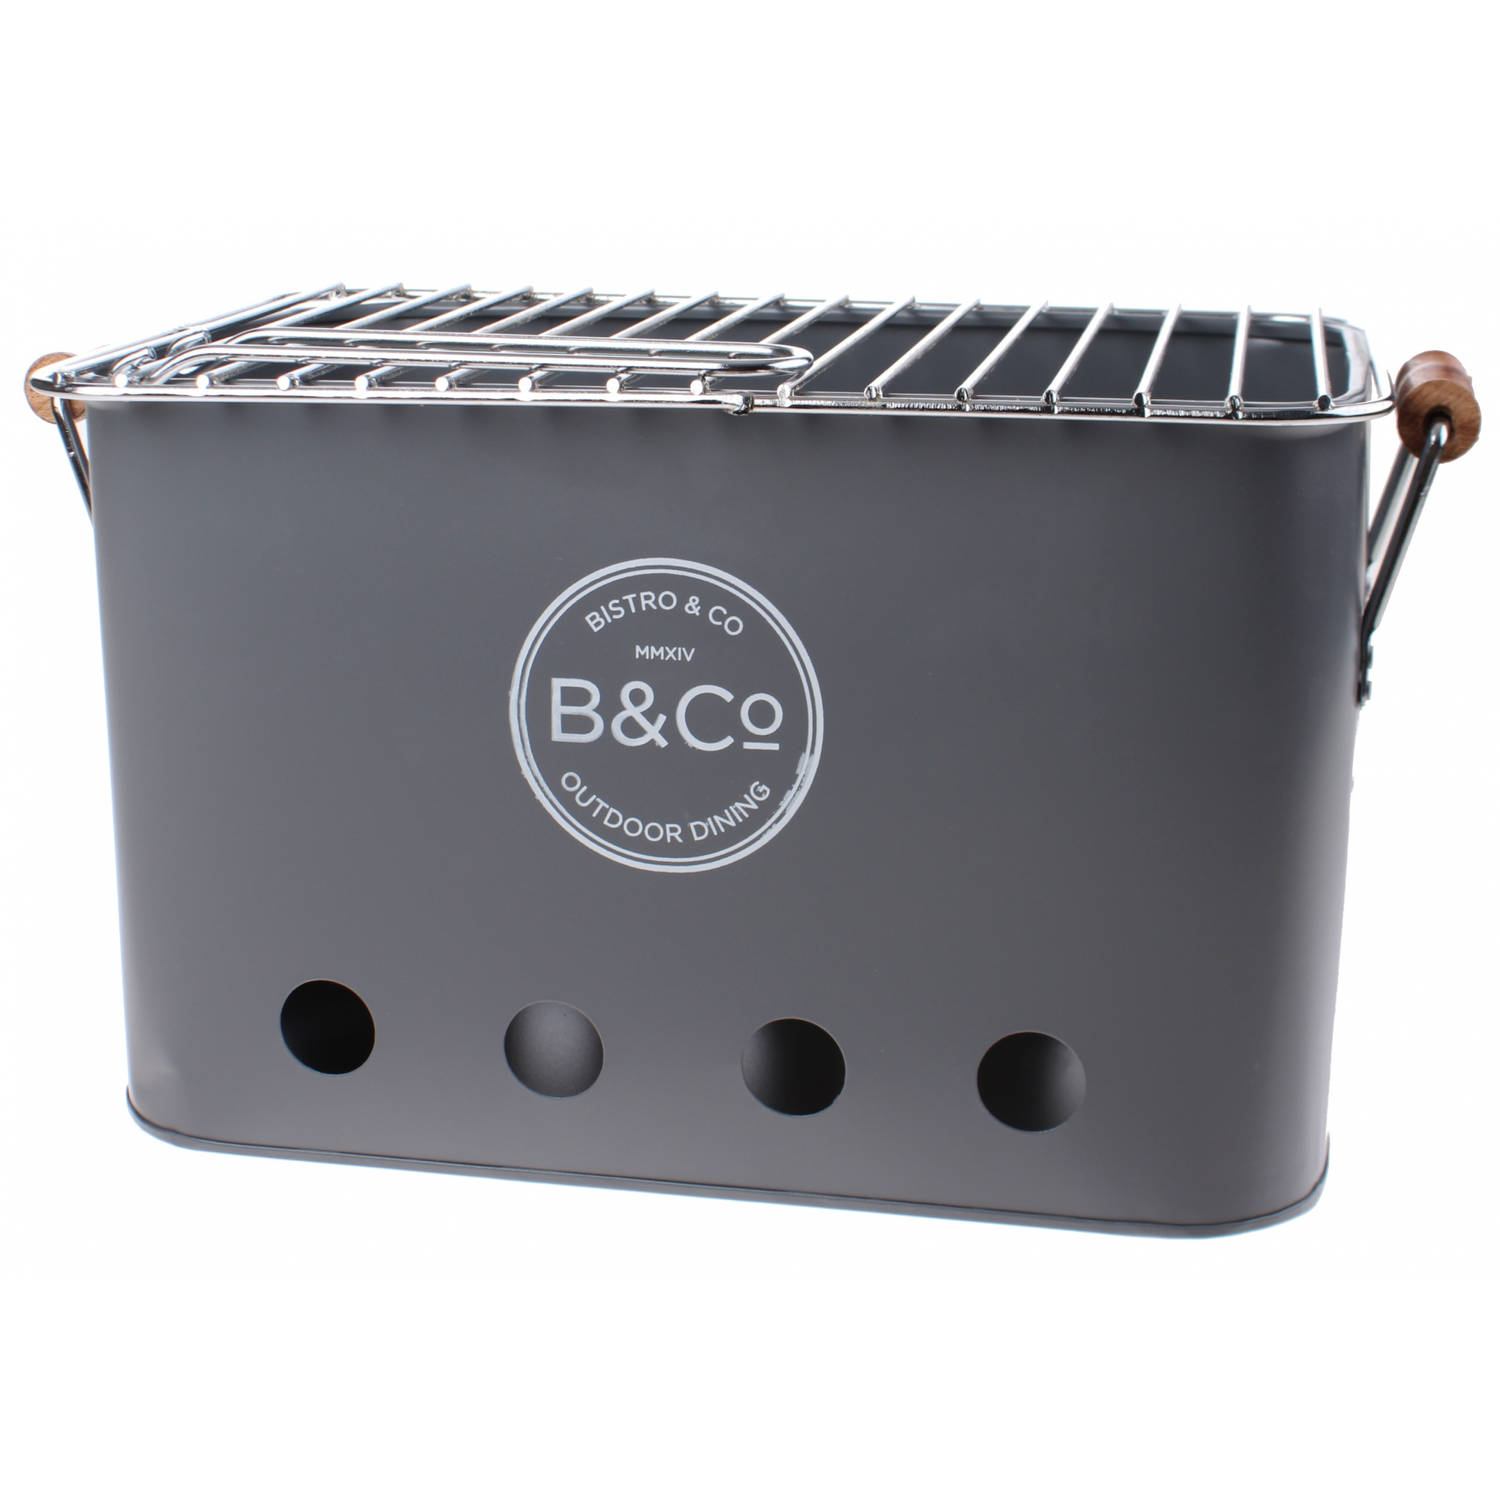 Bco Draagbare Bbq Wilyabrup 32 Cm Staal Grijs